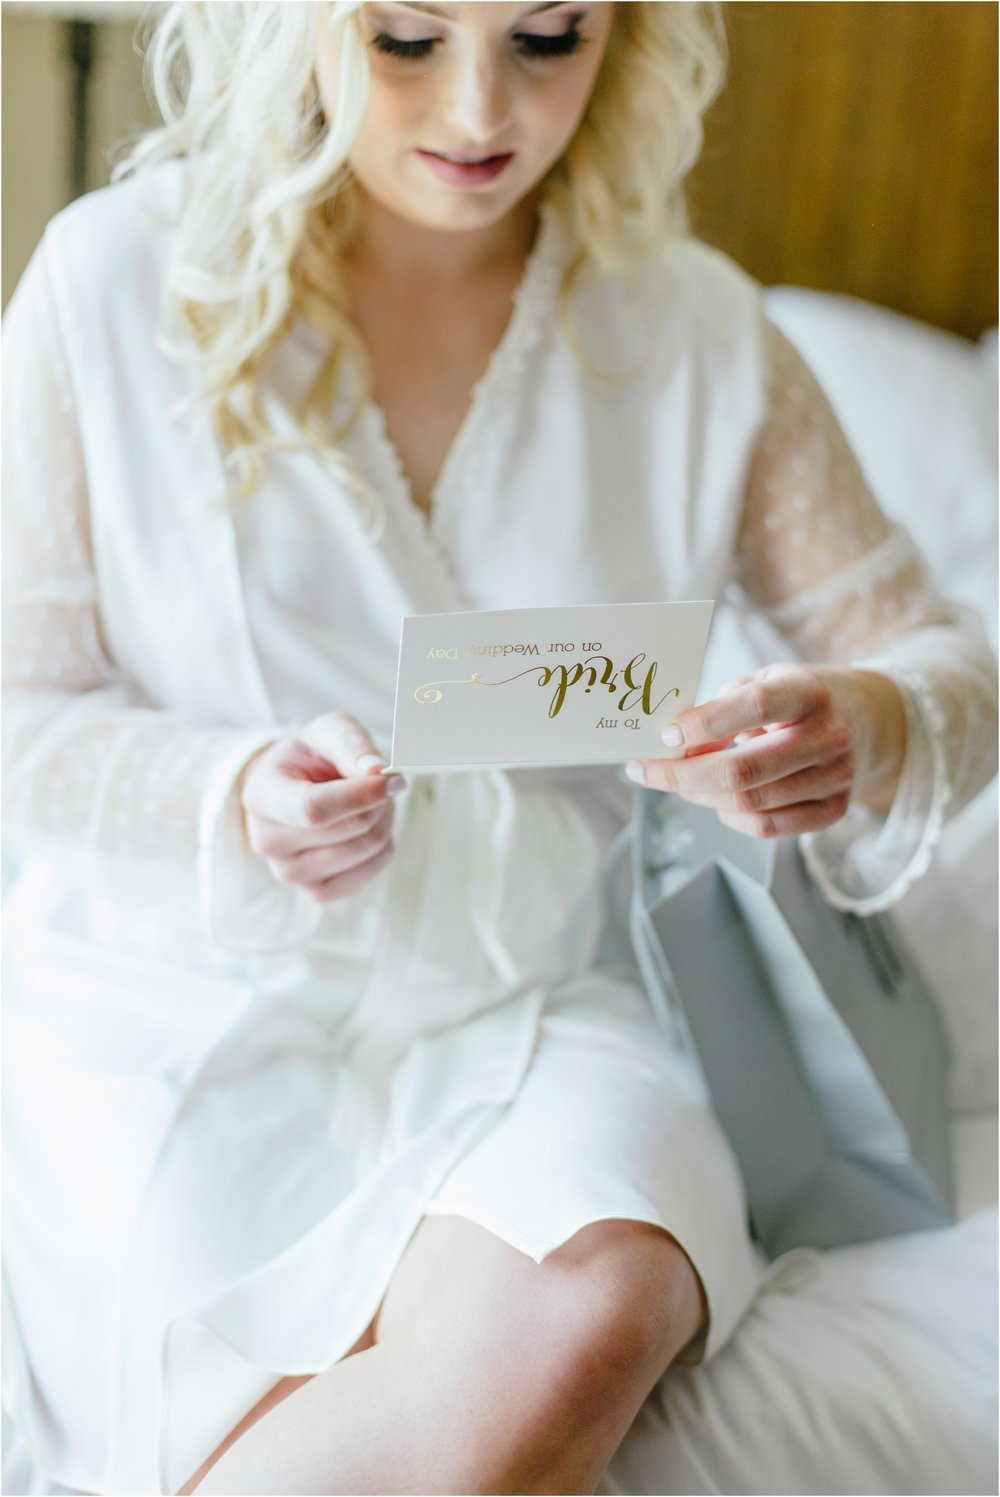 dallasweddingphotographer_fortworthweddingphotographer_texasweddingphotographer_mattandjulieweddings_0004.jpg